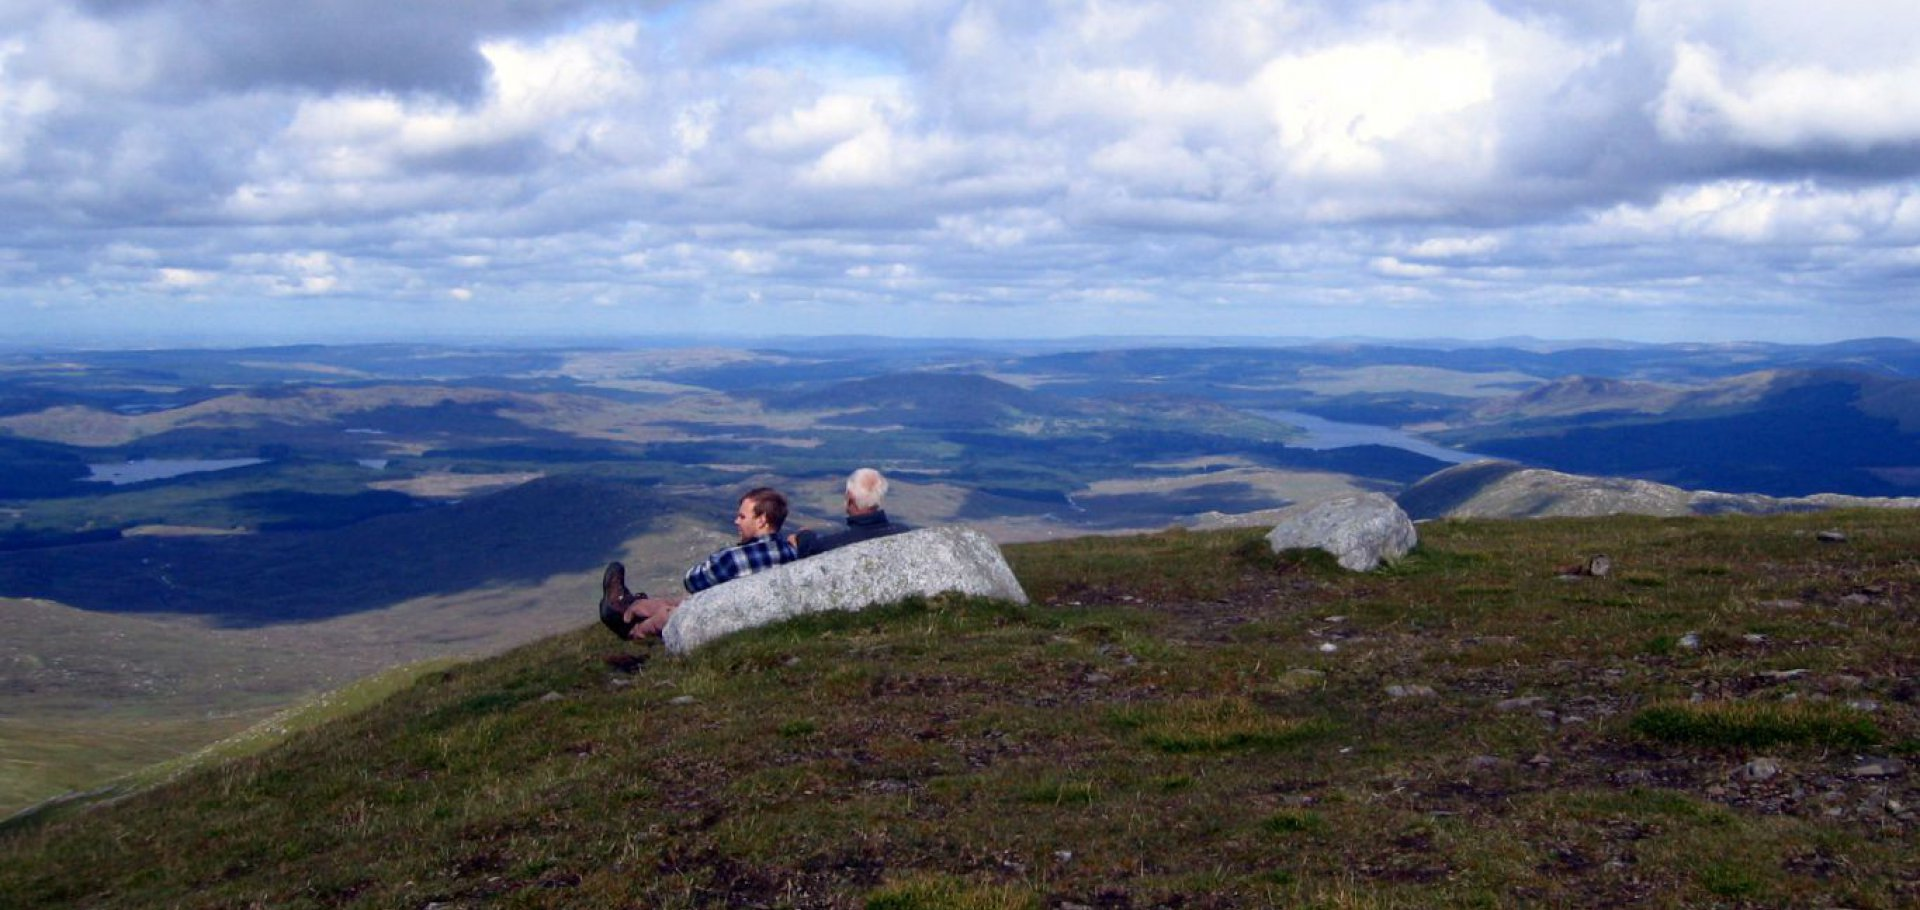 hill walking merrick highest summit southern scotland